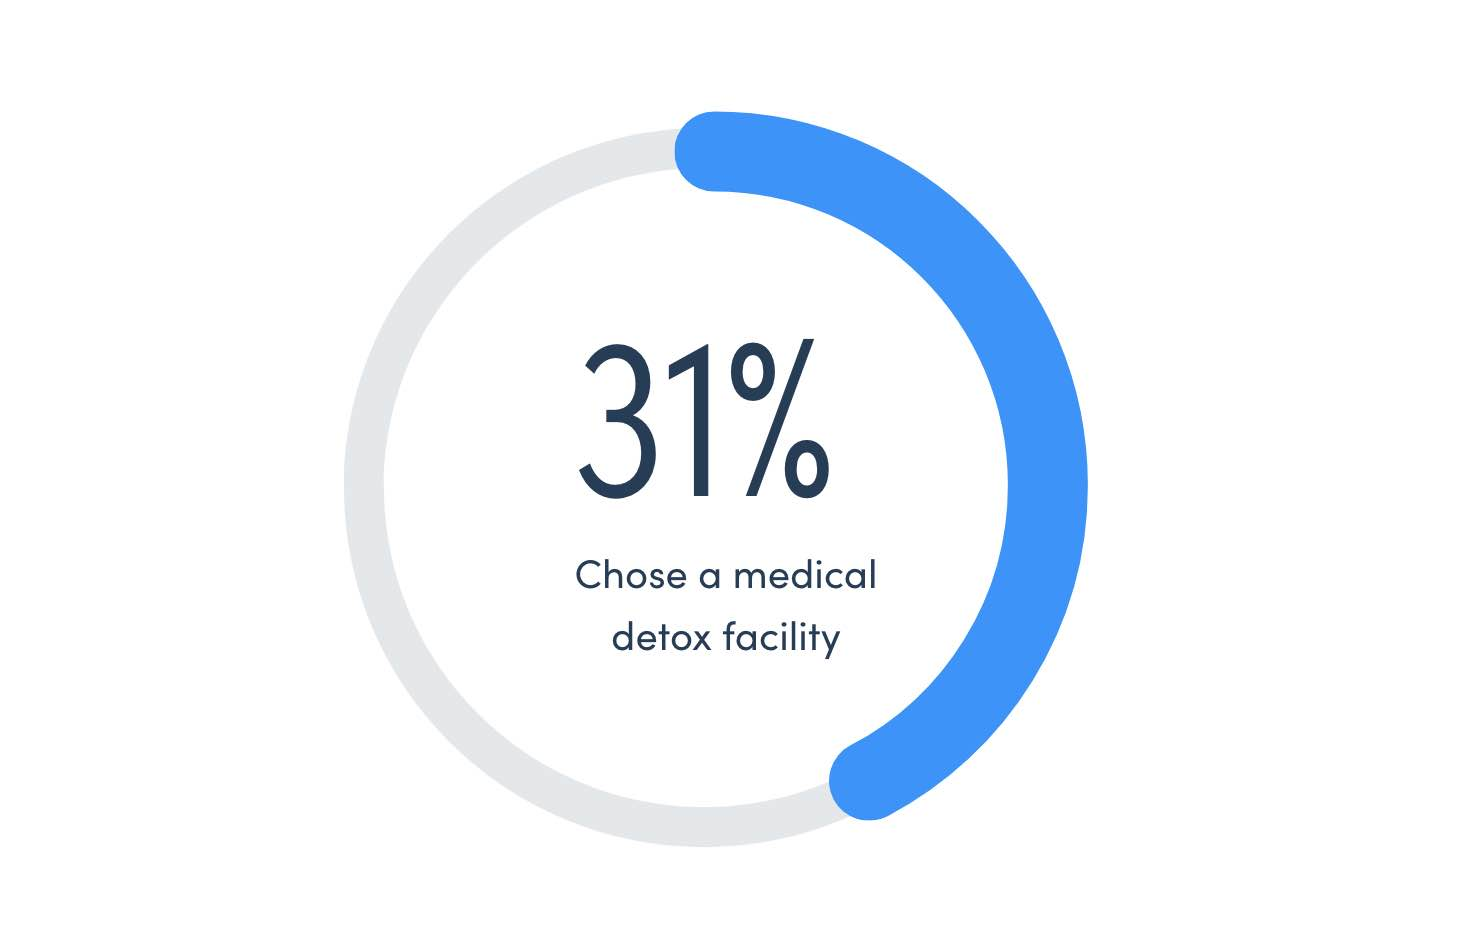 31% Of People Who Seek Treatment For Alcohol Abuse Go To A Medical Detox Facility